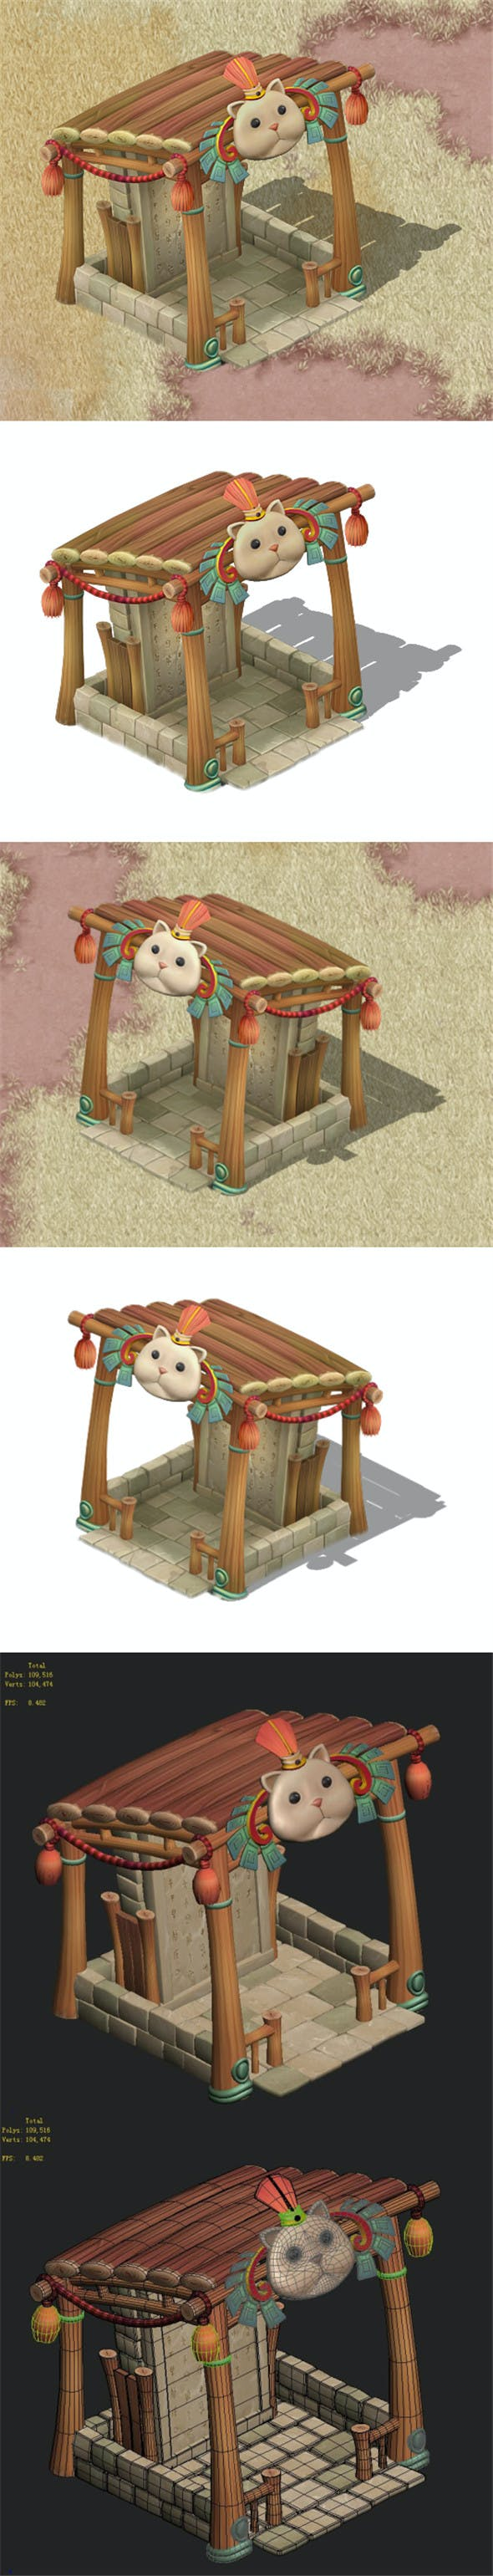 Cartoon version - Beiting - shelter - 3DOcean Item for Sale